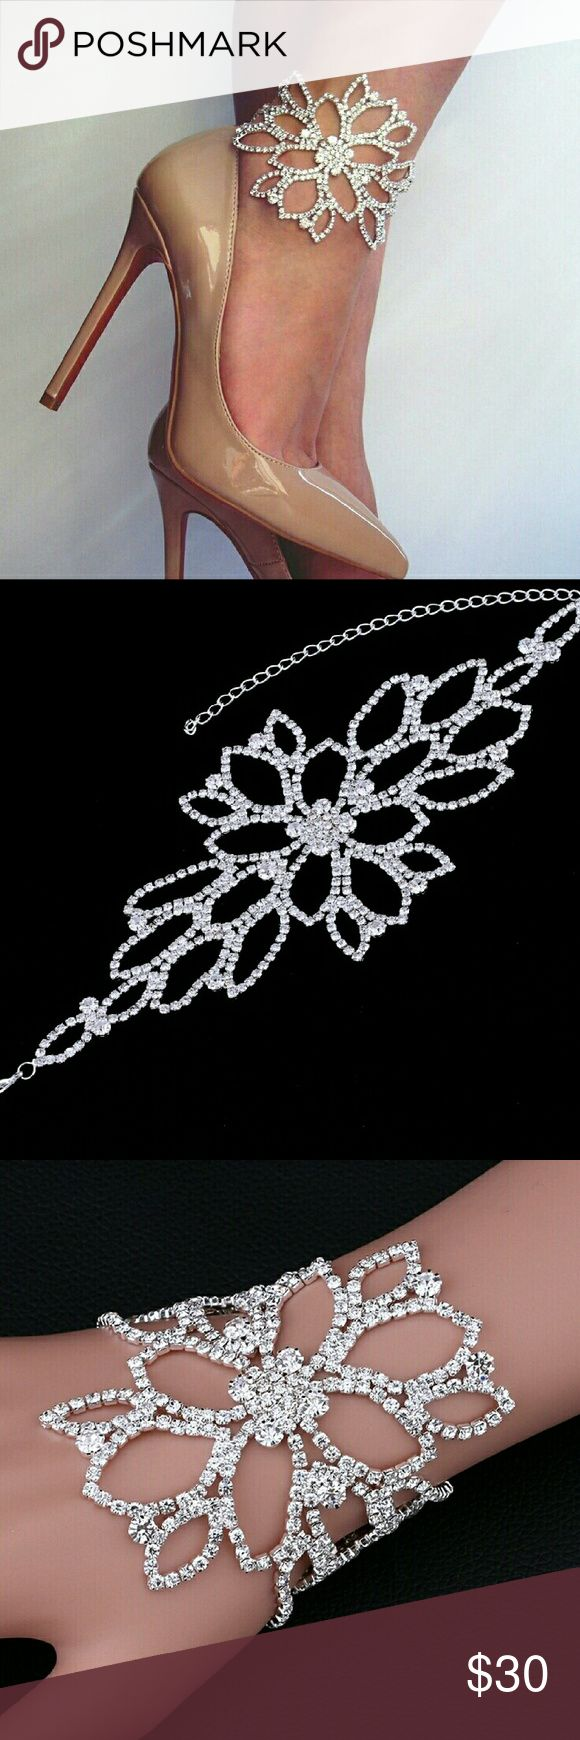 Crystal Bridal Anklet Brand new! Never taken out of package. Silver plated. Genuine crystal.  Offers welcome! Jewelry Bracelets